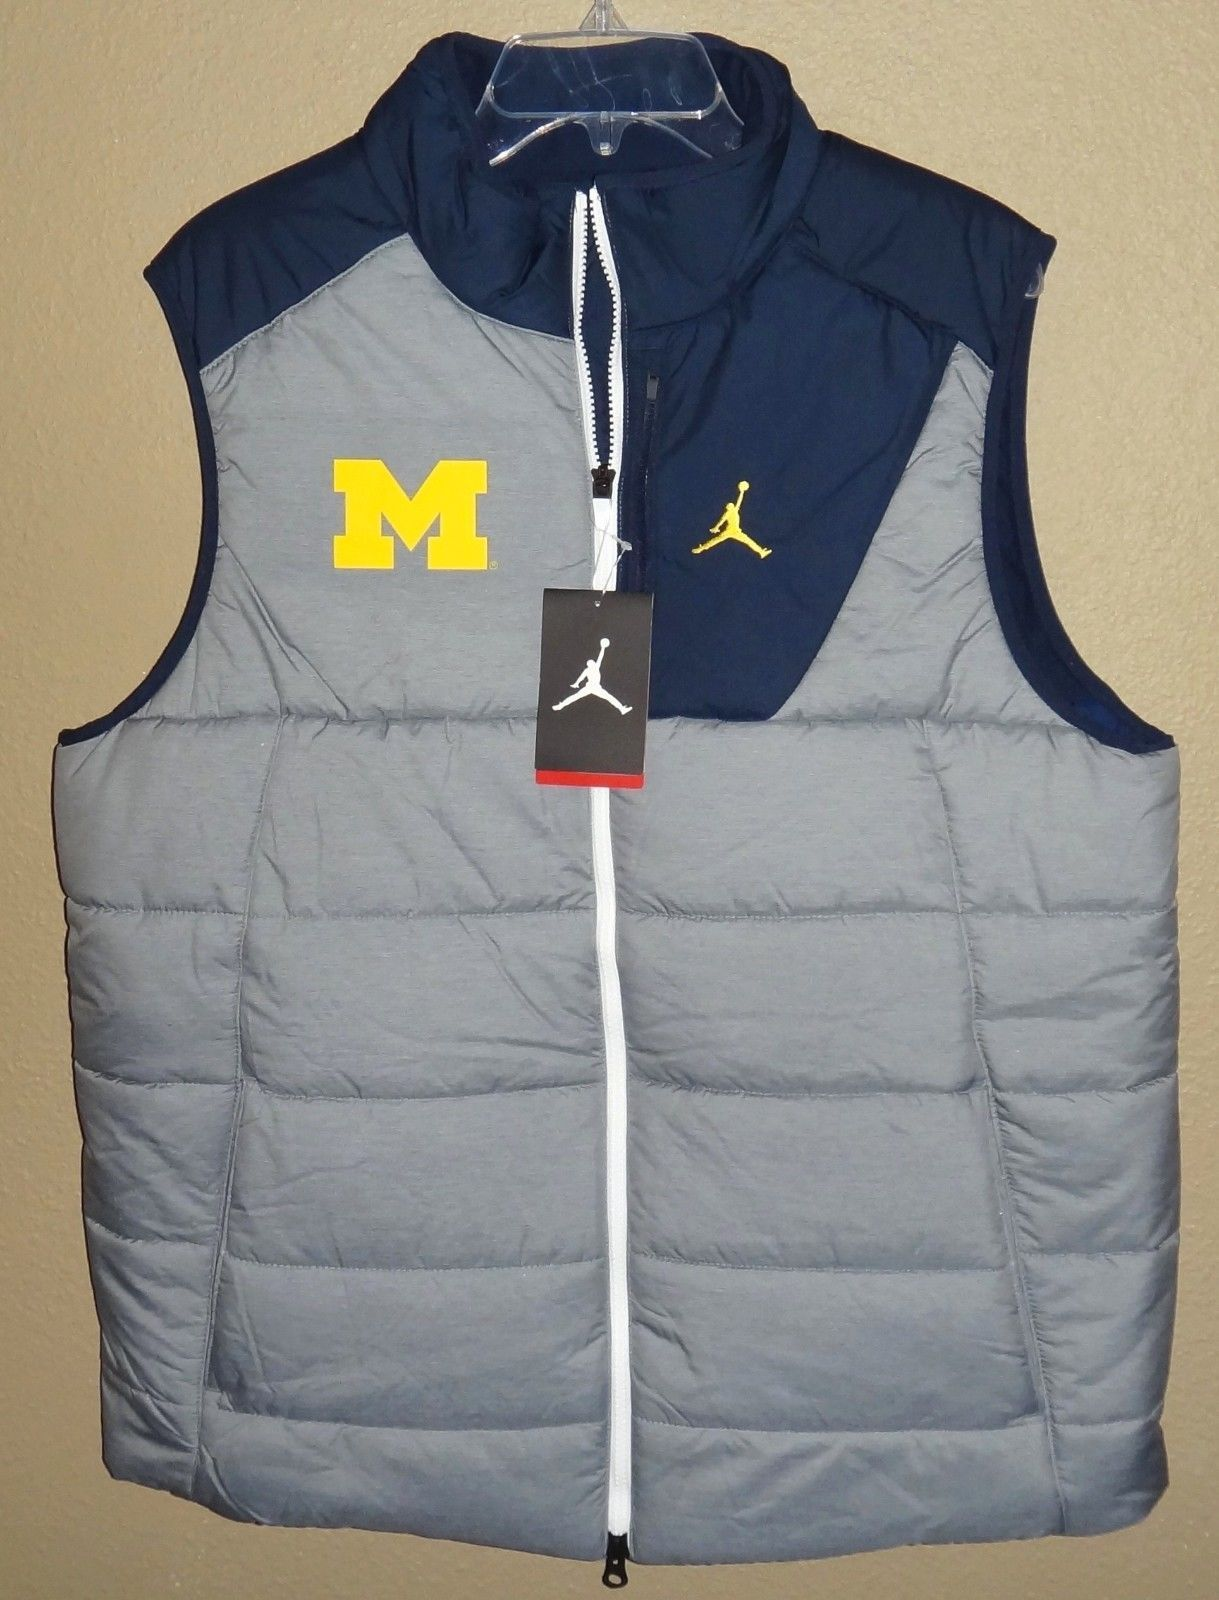 brand new a3d03 fc3a6 NWT MENS L LG NIKE AIR JORDAN MICHIGAN WOLVERINES FOOTBALL PLAYER VEST  JACKET